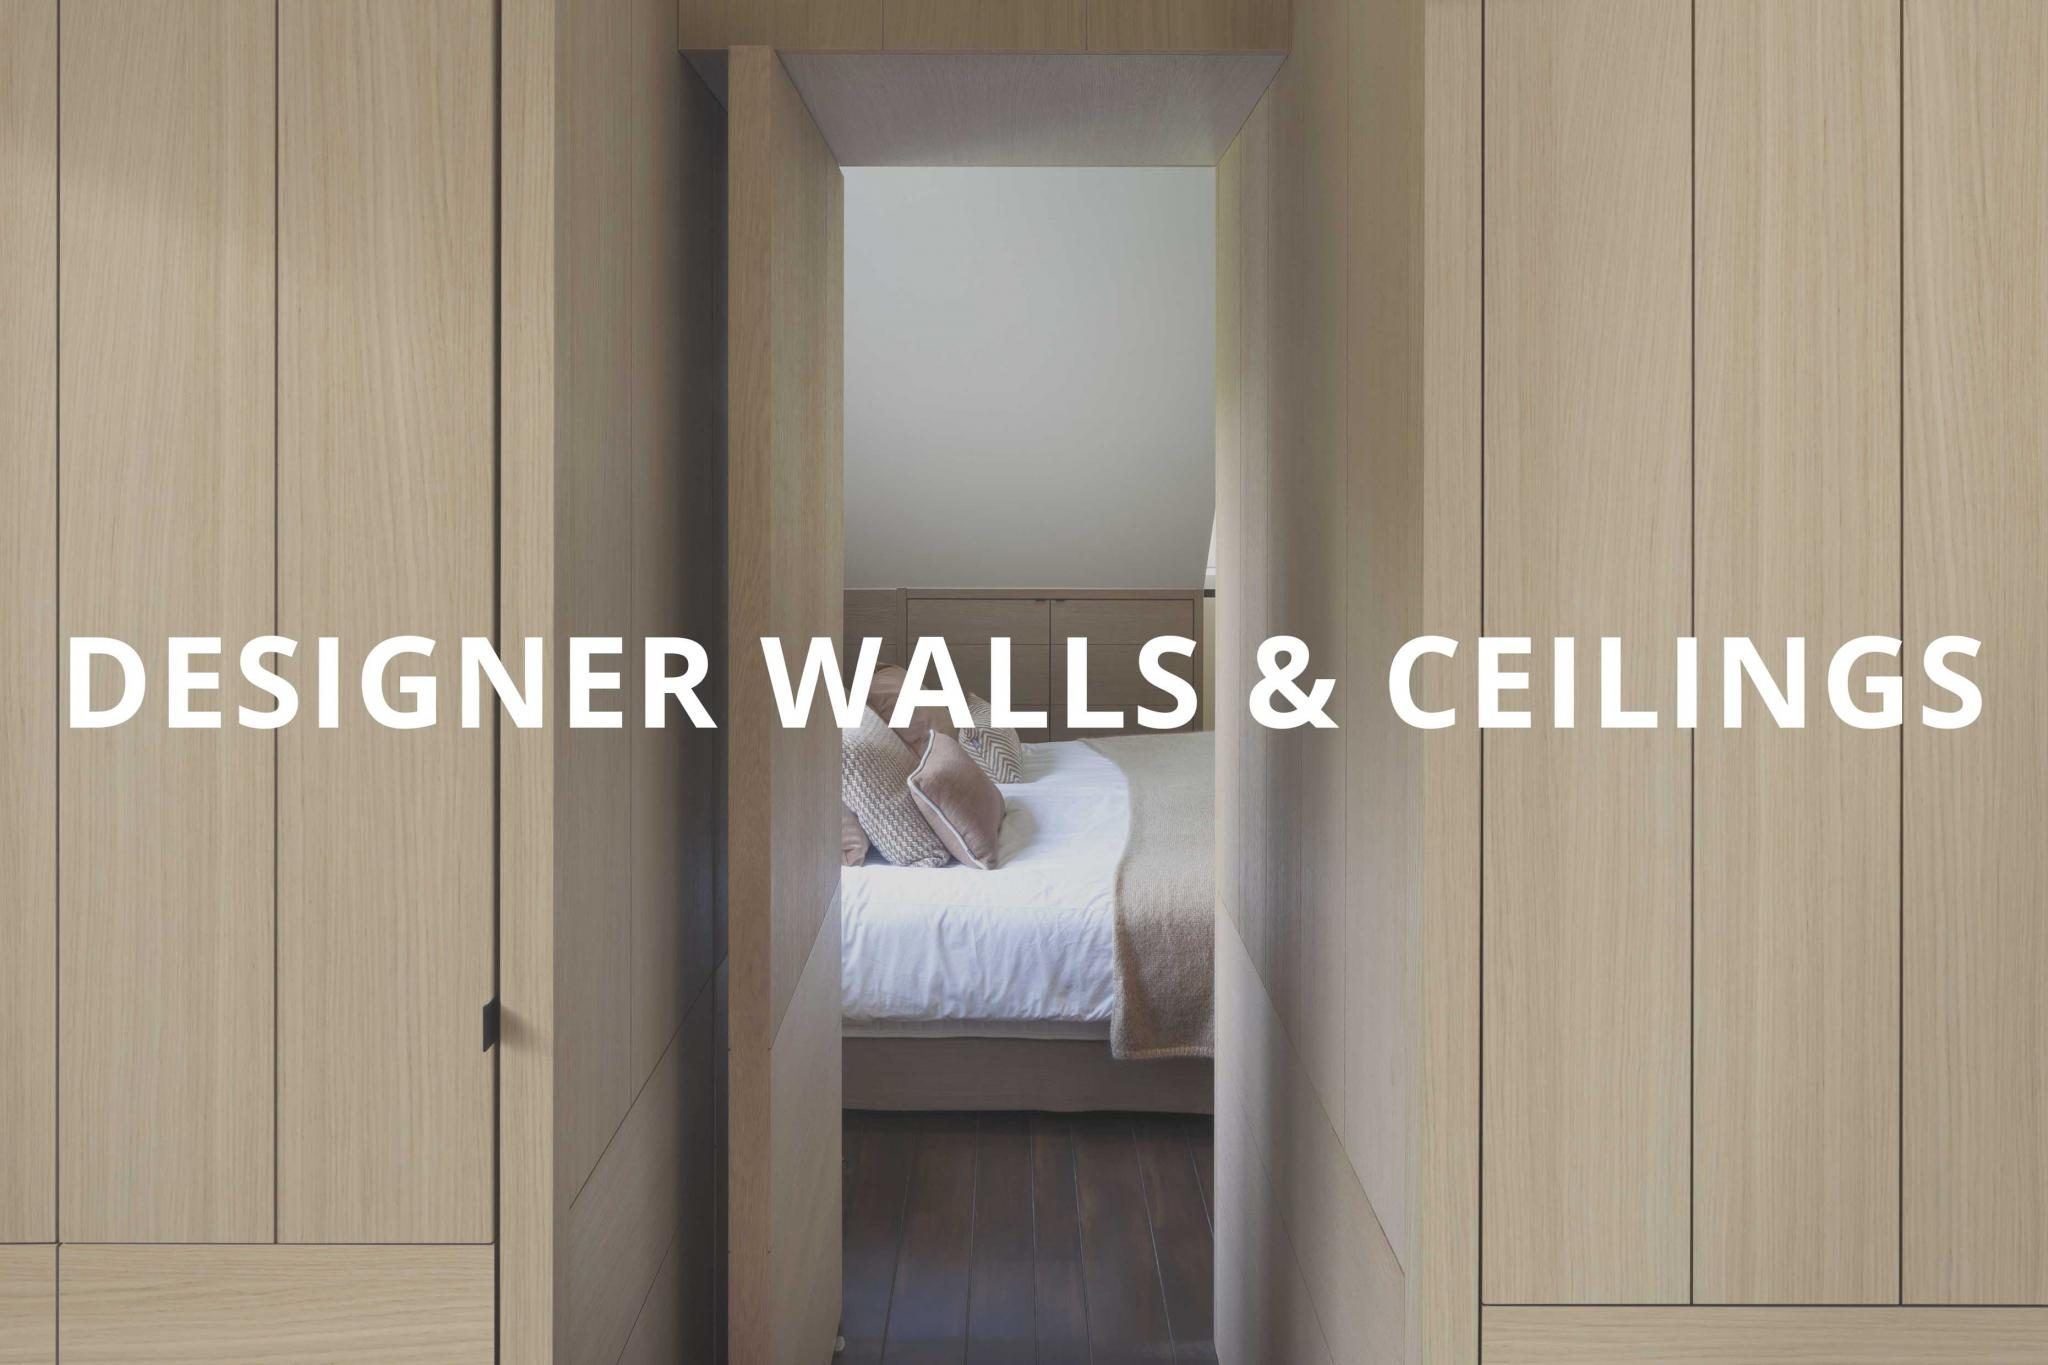 Browse Designer Walls & Ceilings